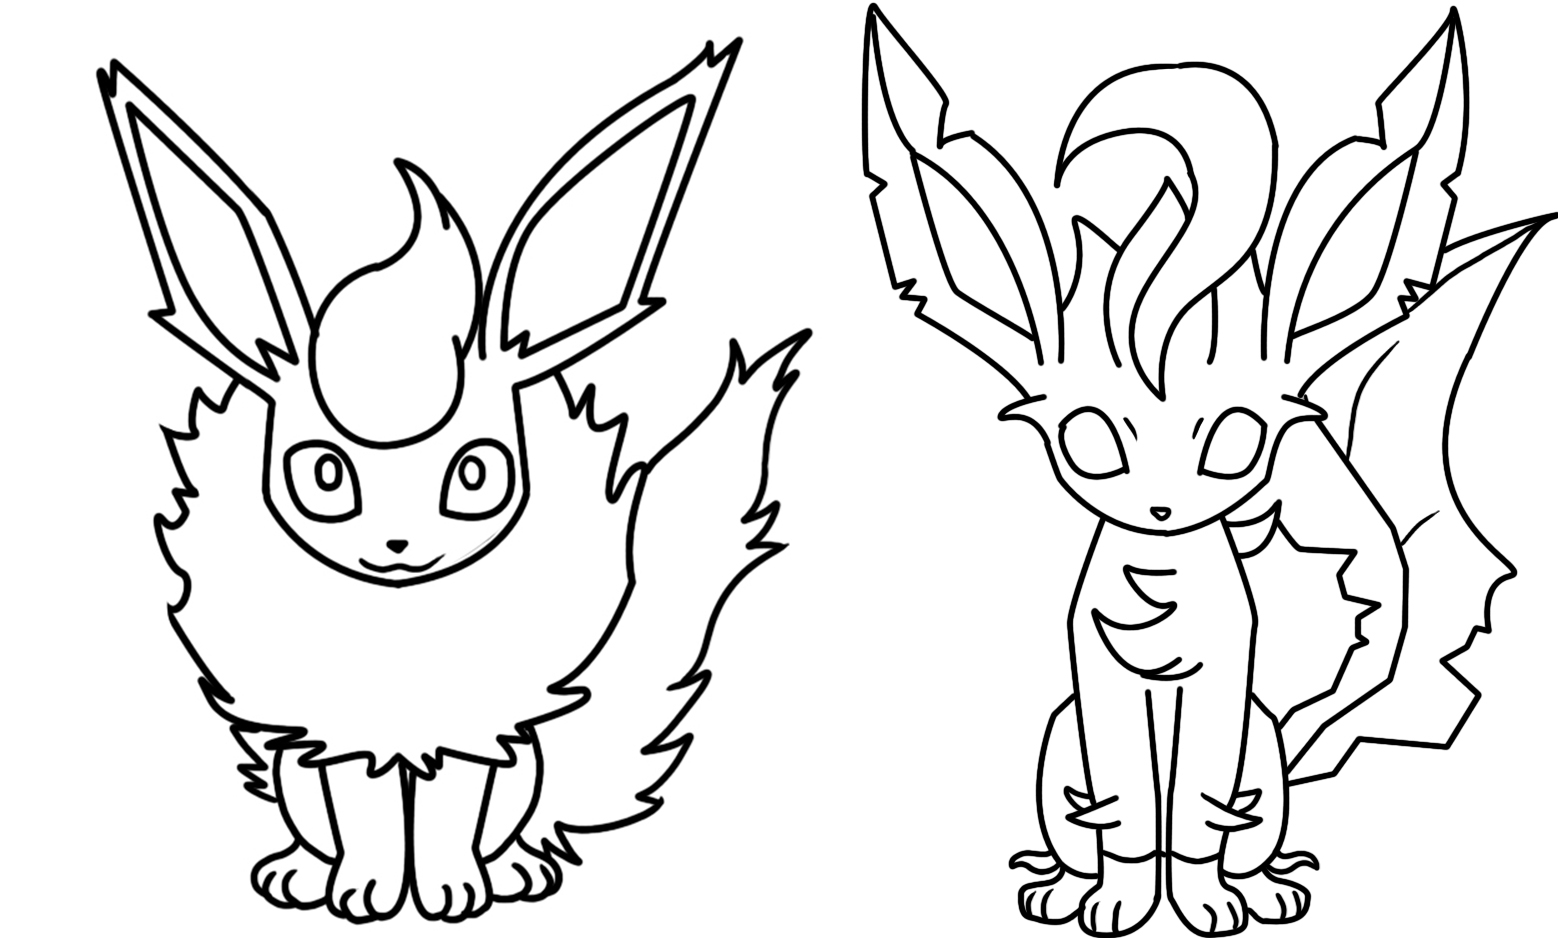 Flareon and leafeon coloring page by bellatrixie white on for Flareon coloring pages